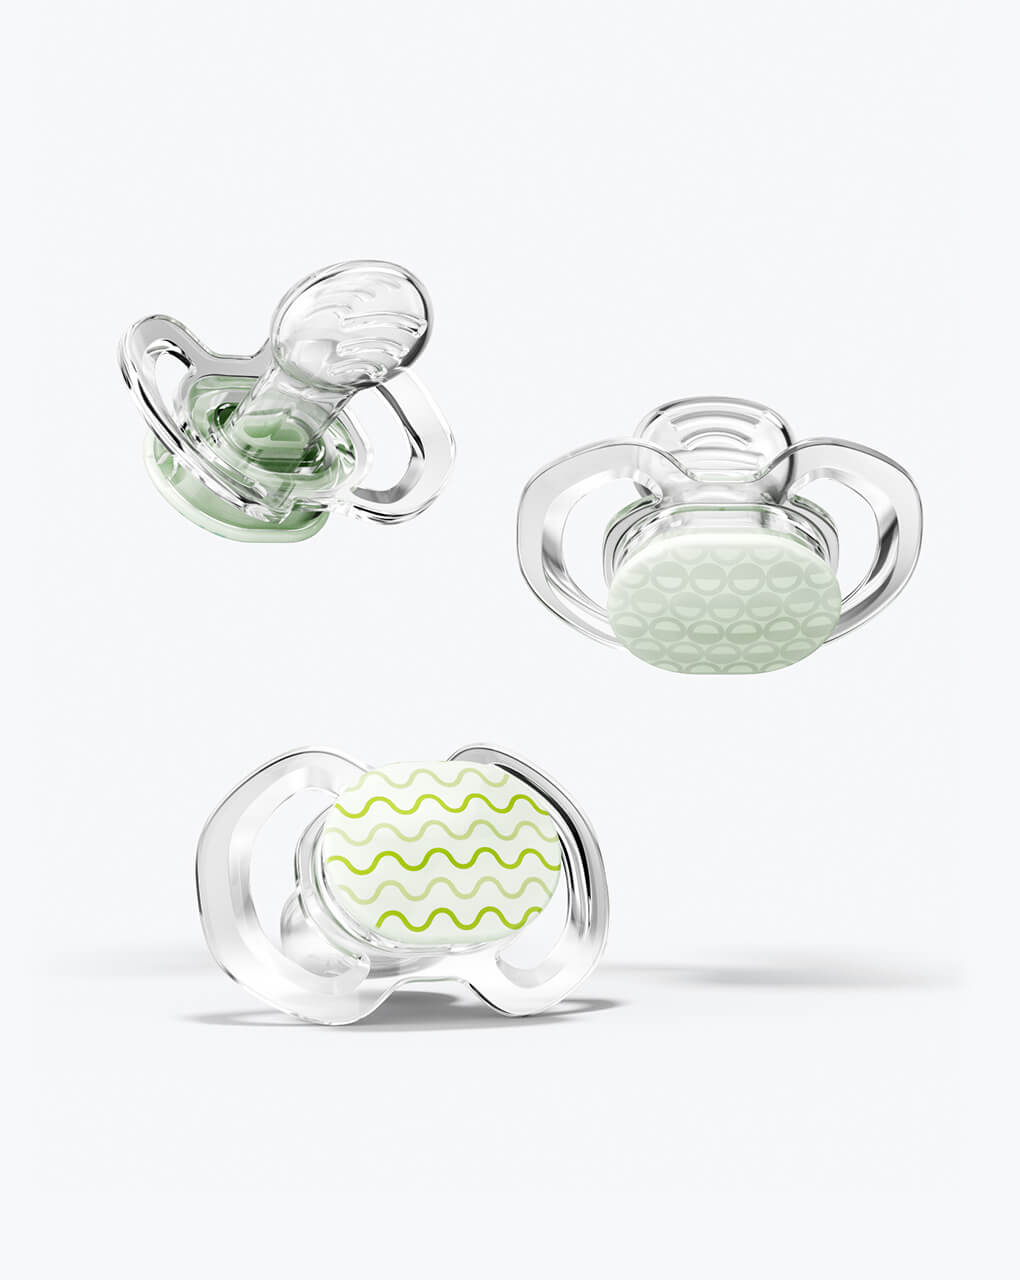 Glow-in-the-dark pacifiers perfect for baby's first Halloween!